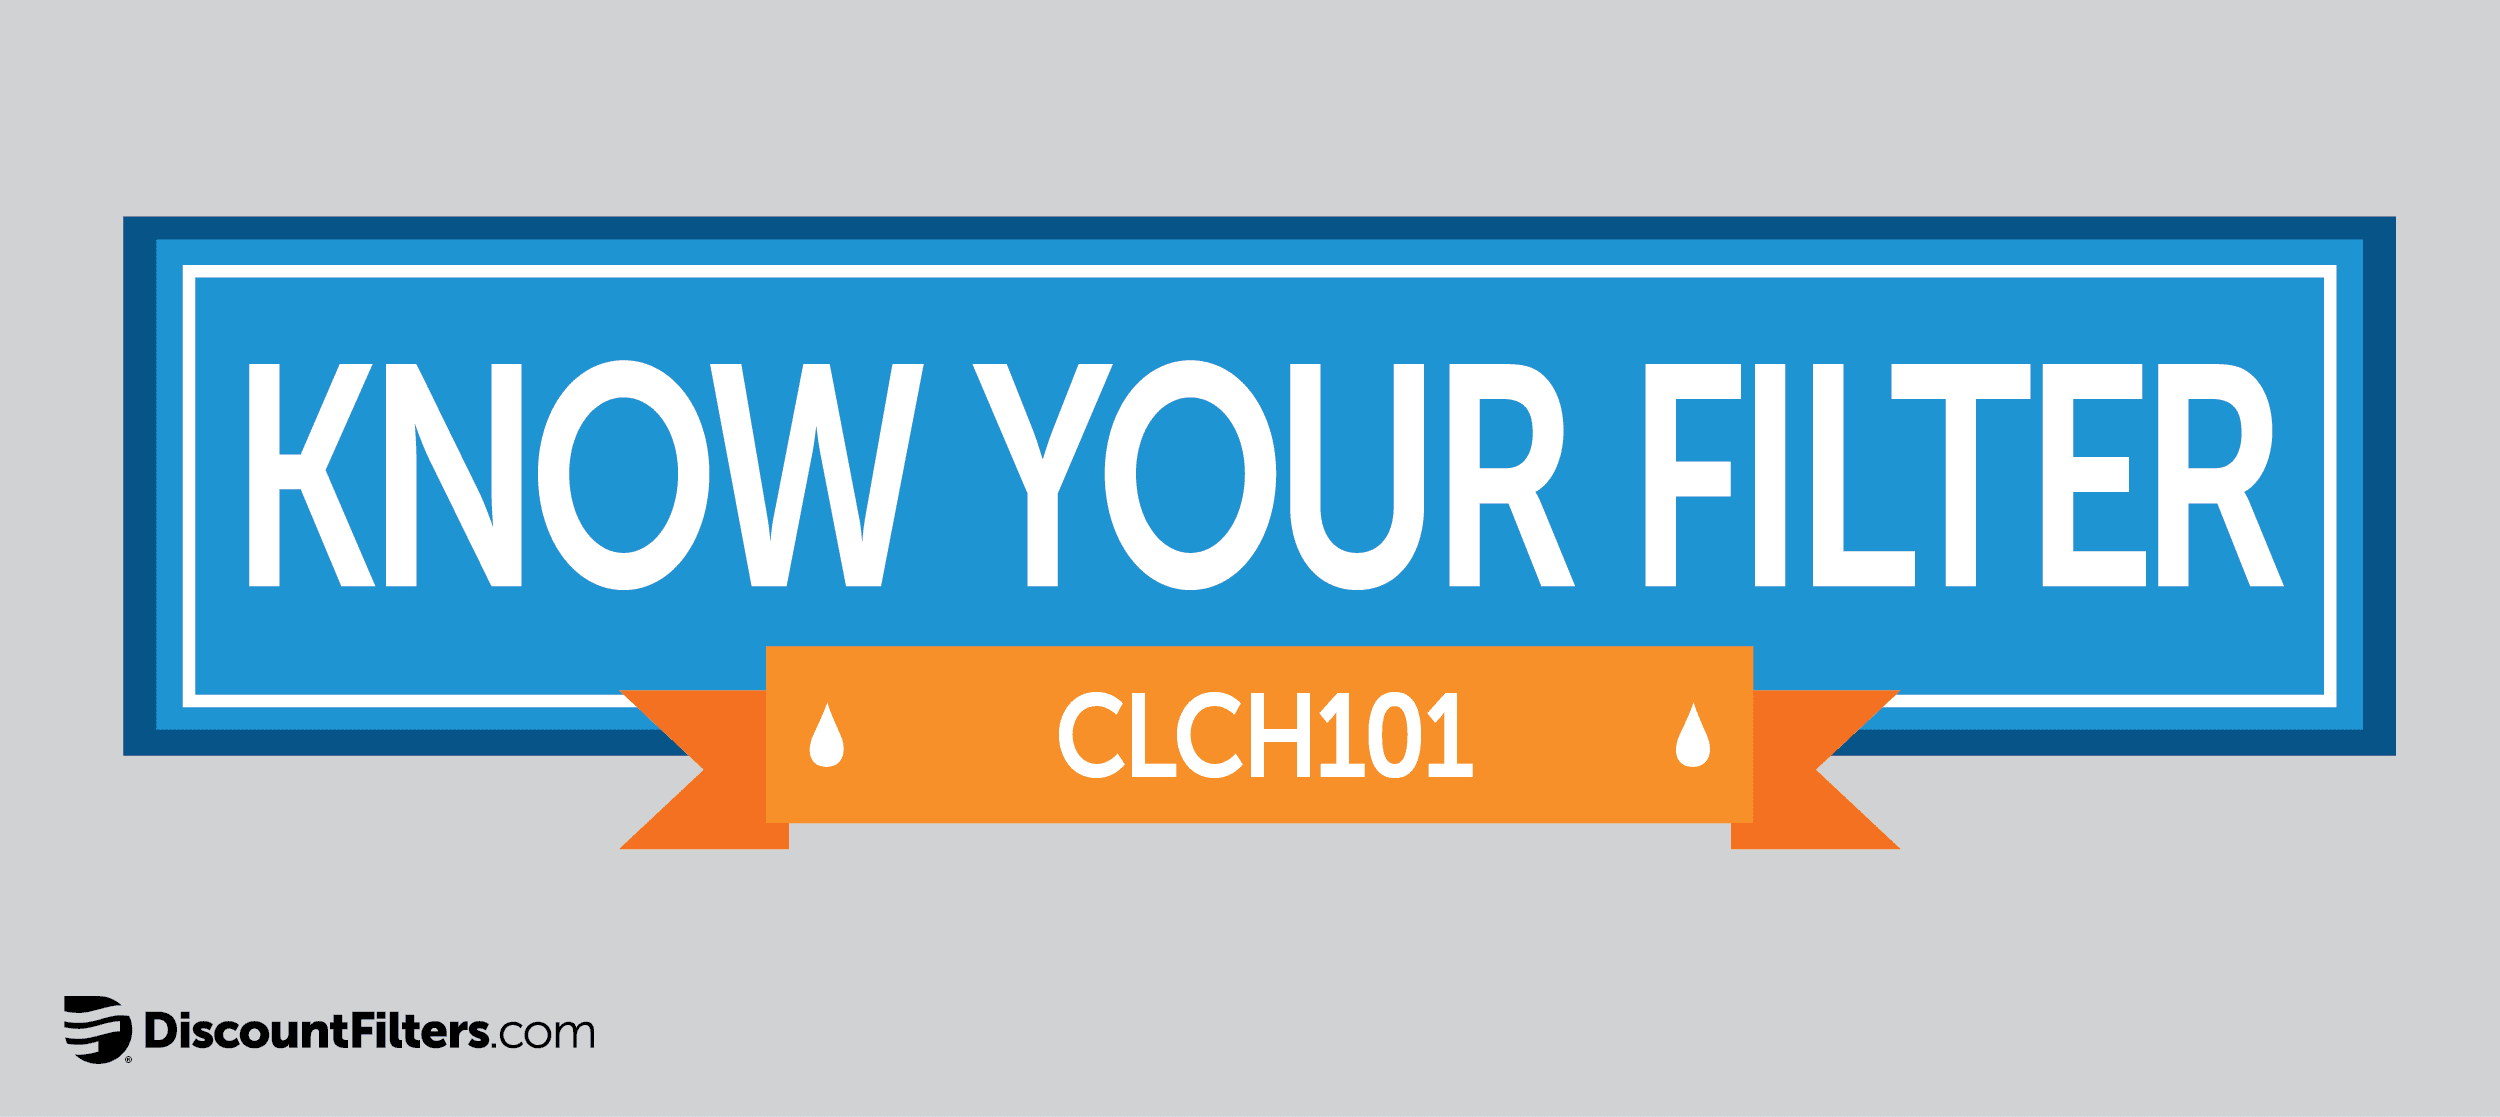 know your fridge filter: clch101